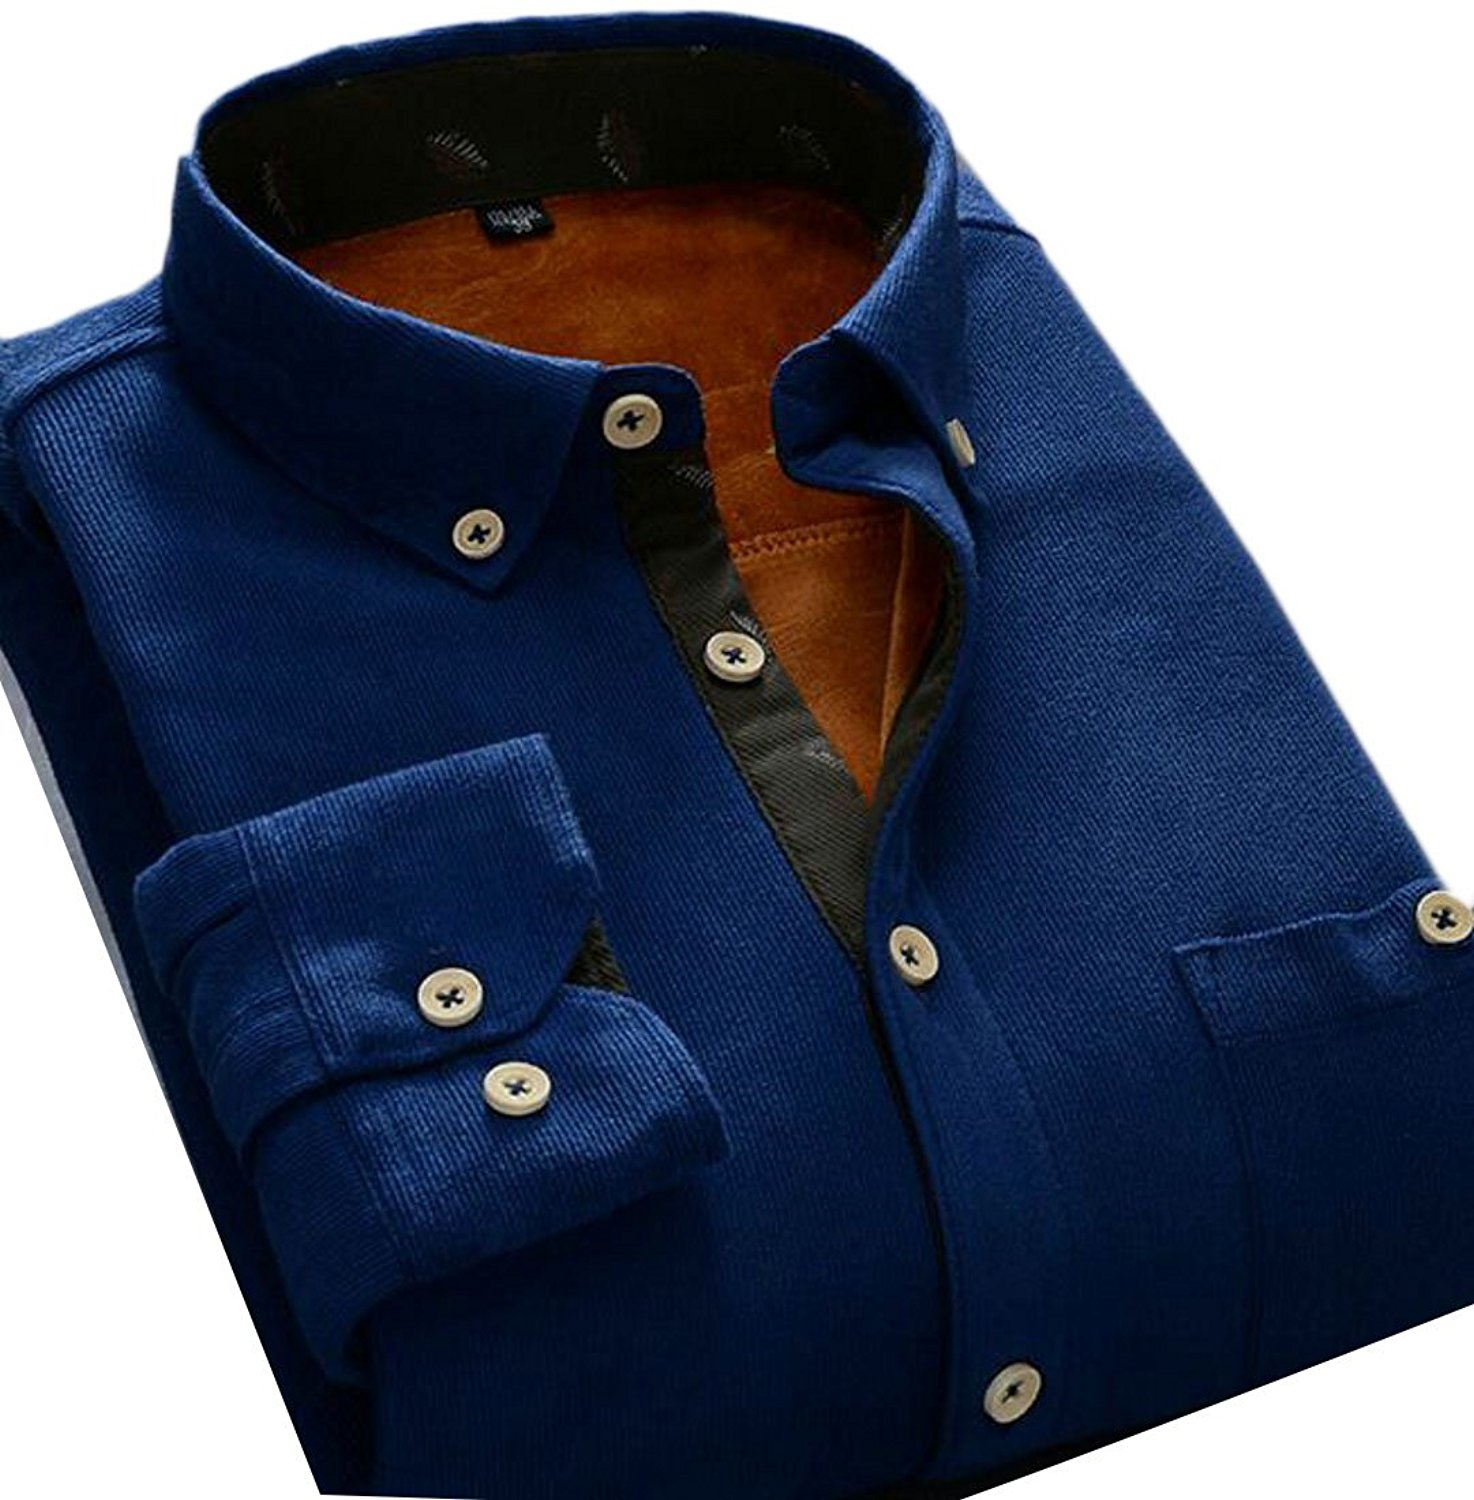 GAGA Mens Leisure Long Sleeve Slim Fit Corduroy Solid Color Button Down Dress Shirts